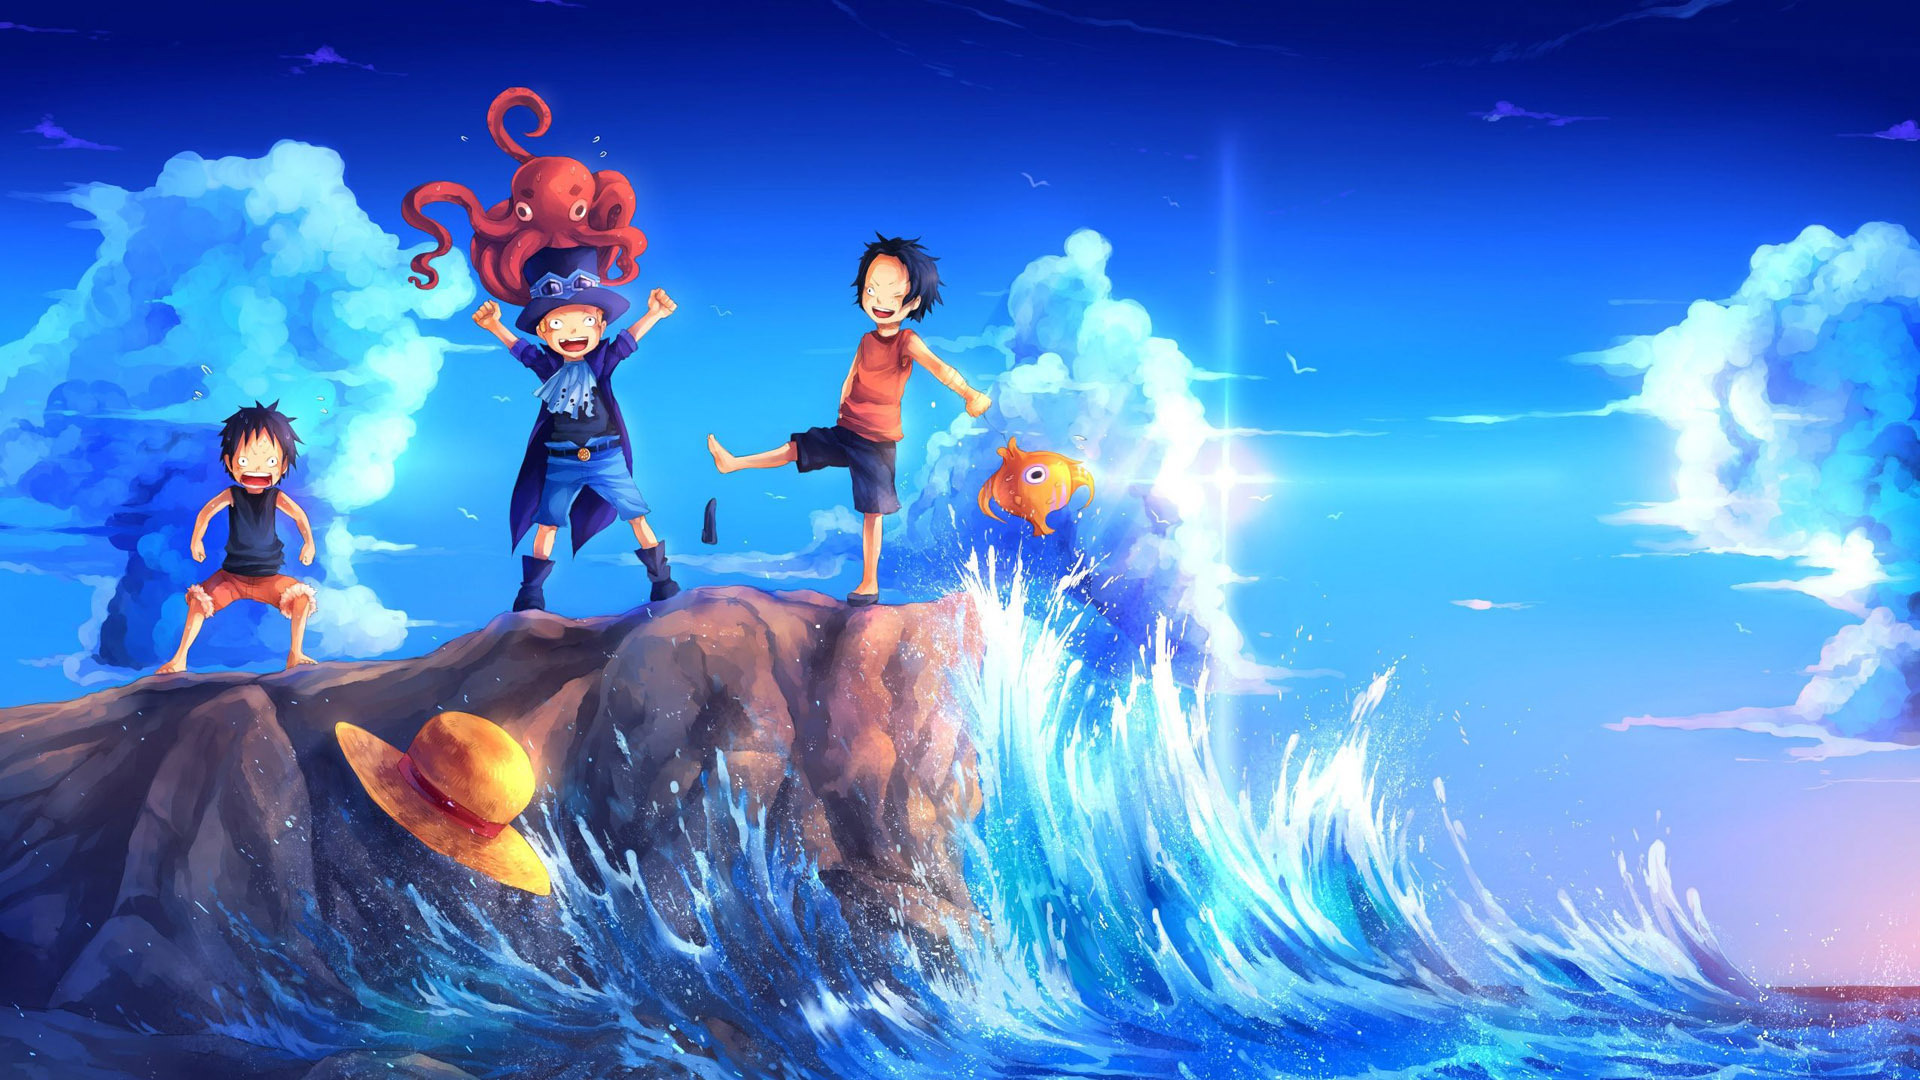 Free download 1920 X 1080 Anime Wallpaper One Piece 1920x1080 for your Desktop, Mobile ...